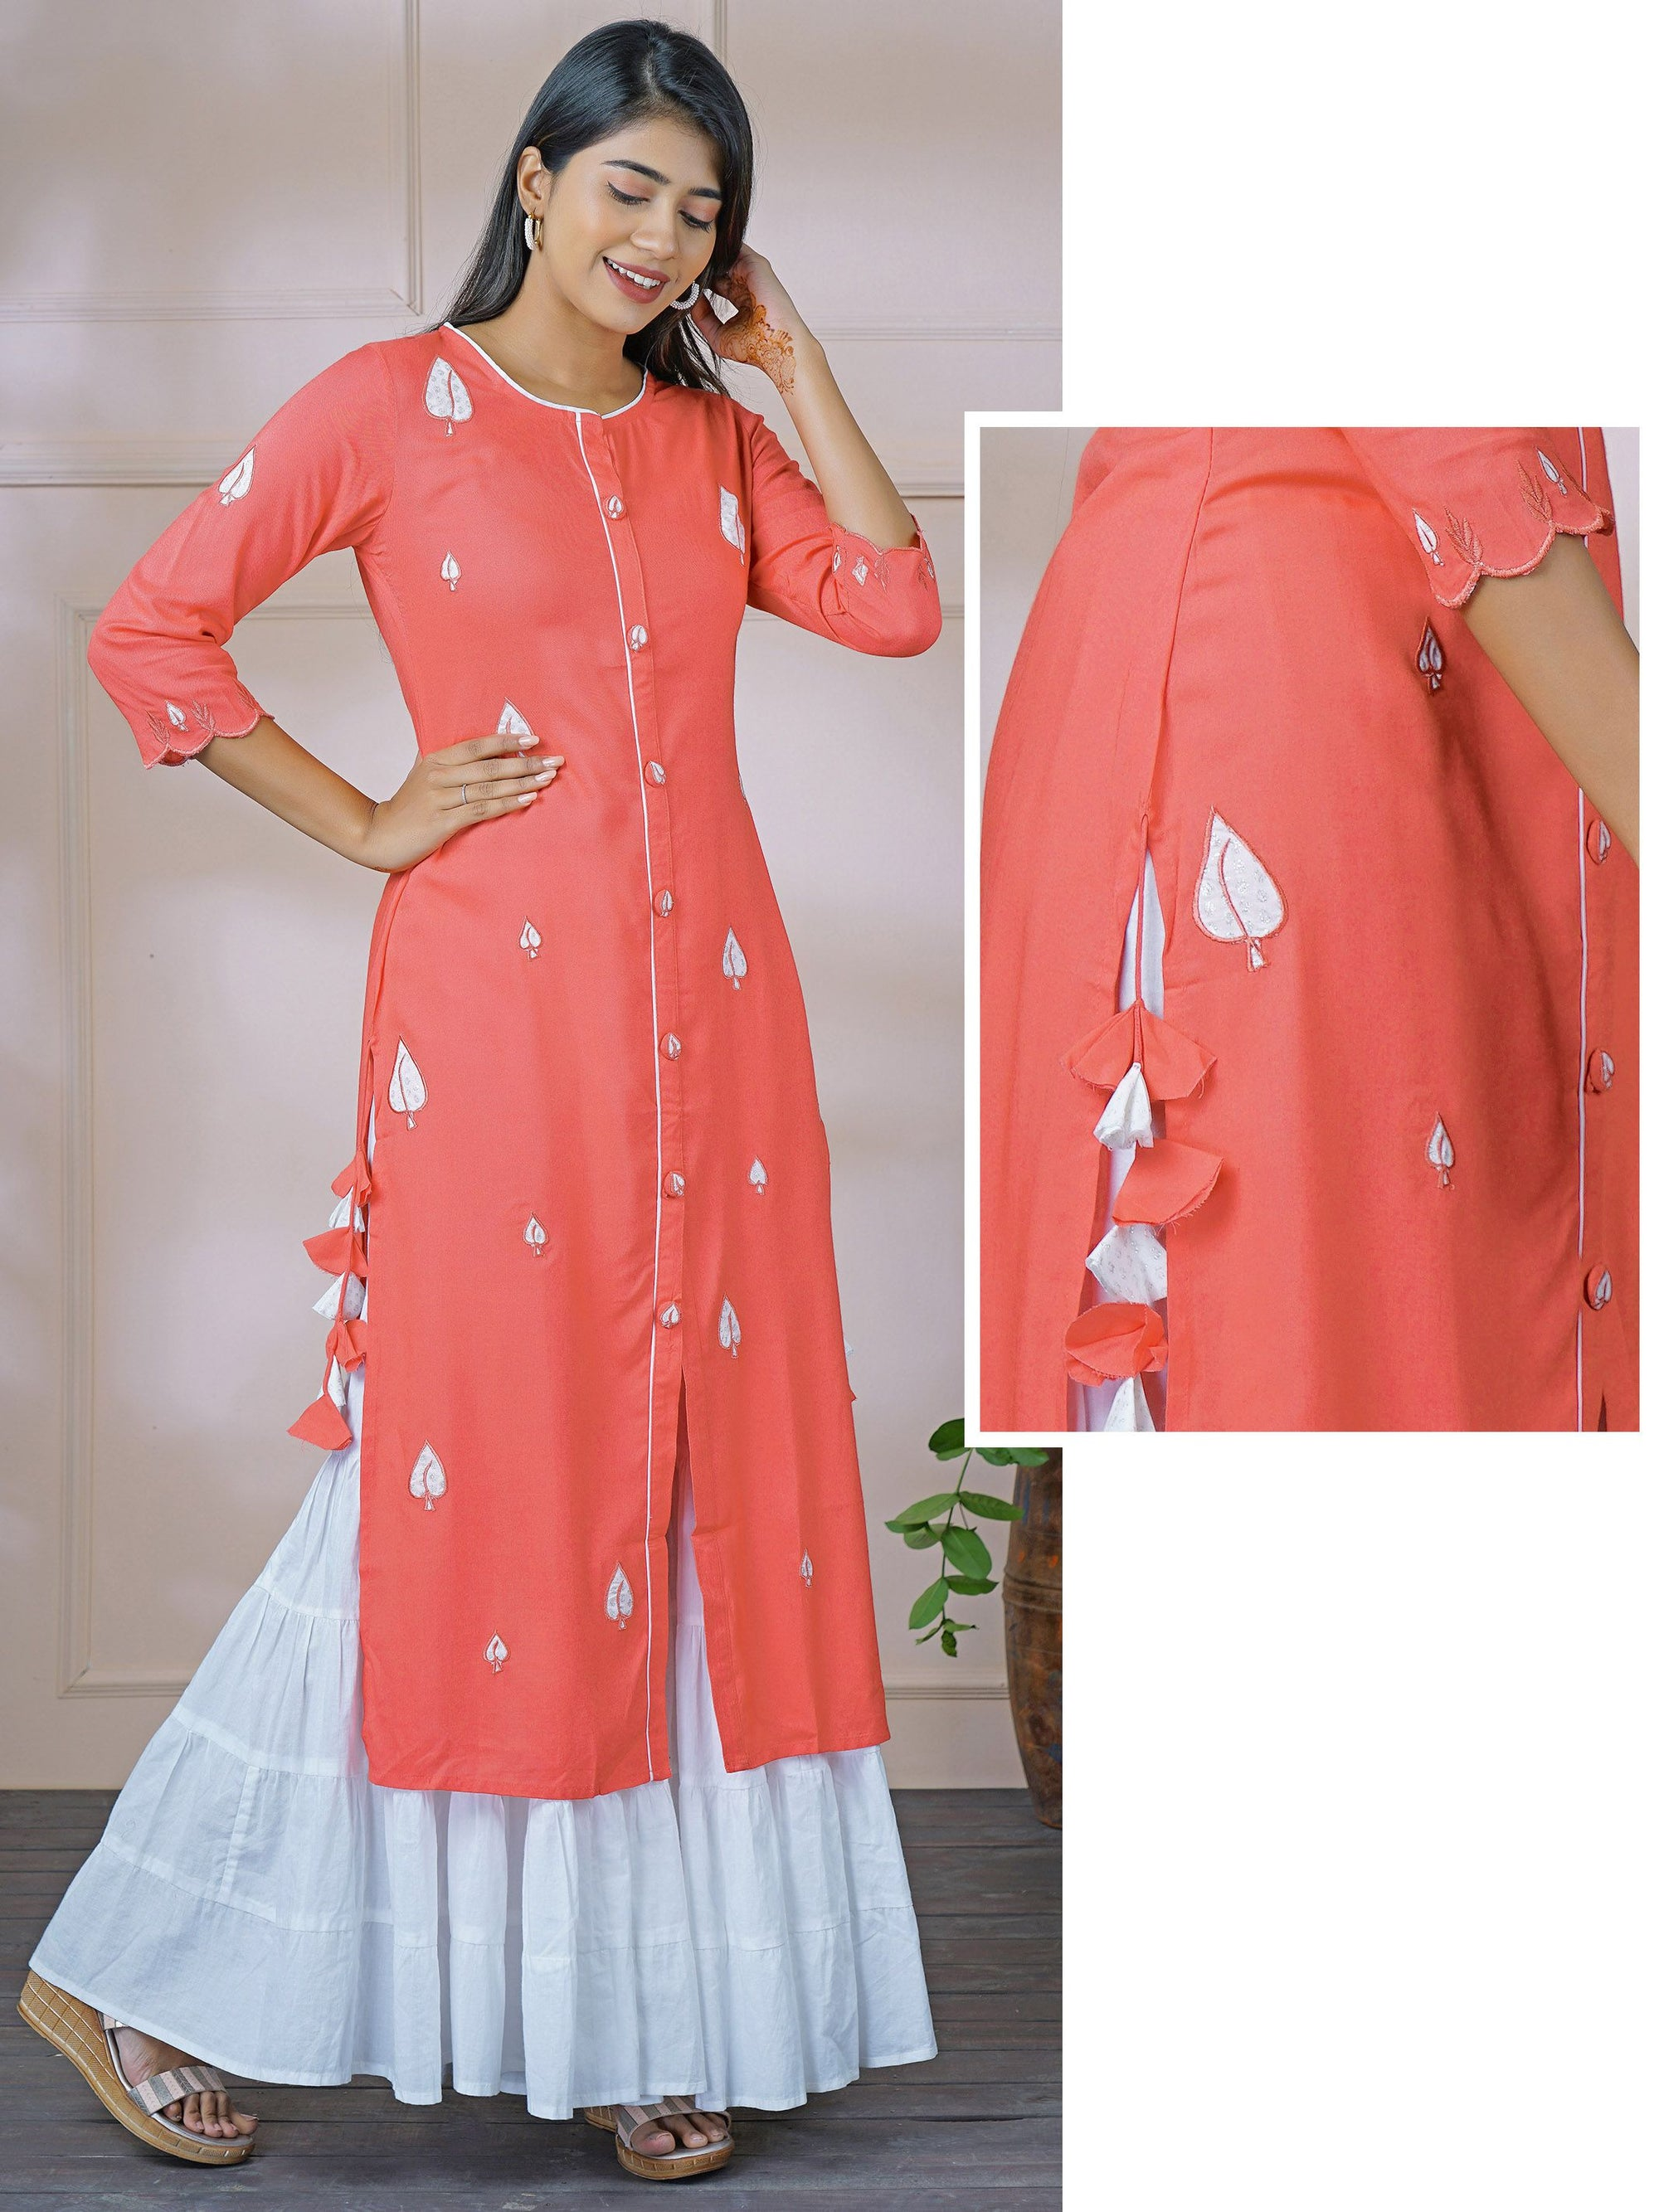 Silver Leaf Patch Worked Panel Kurti with Tassels - Candy Pink